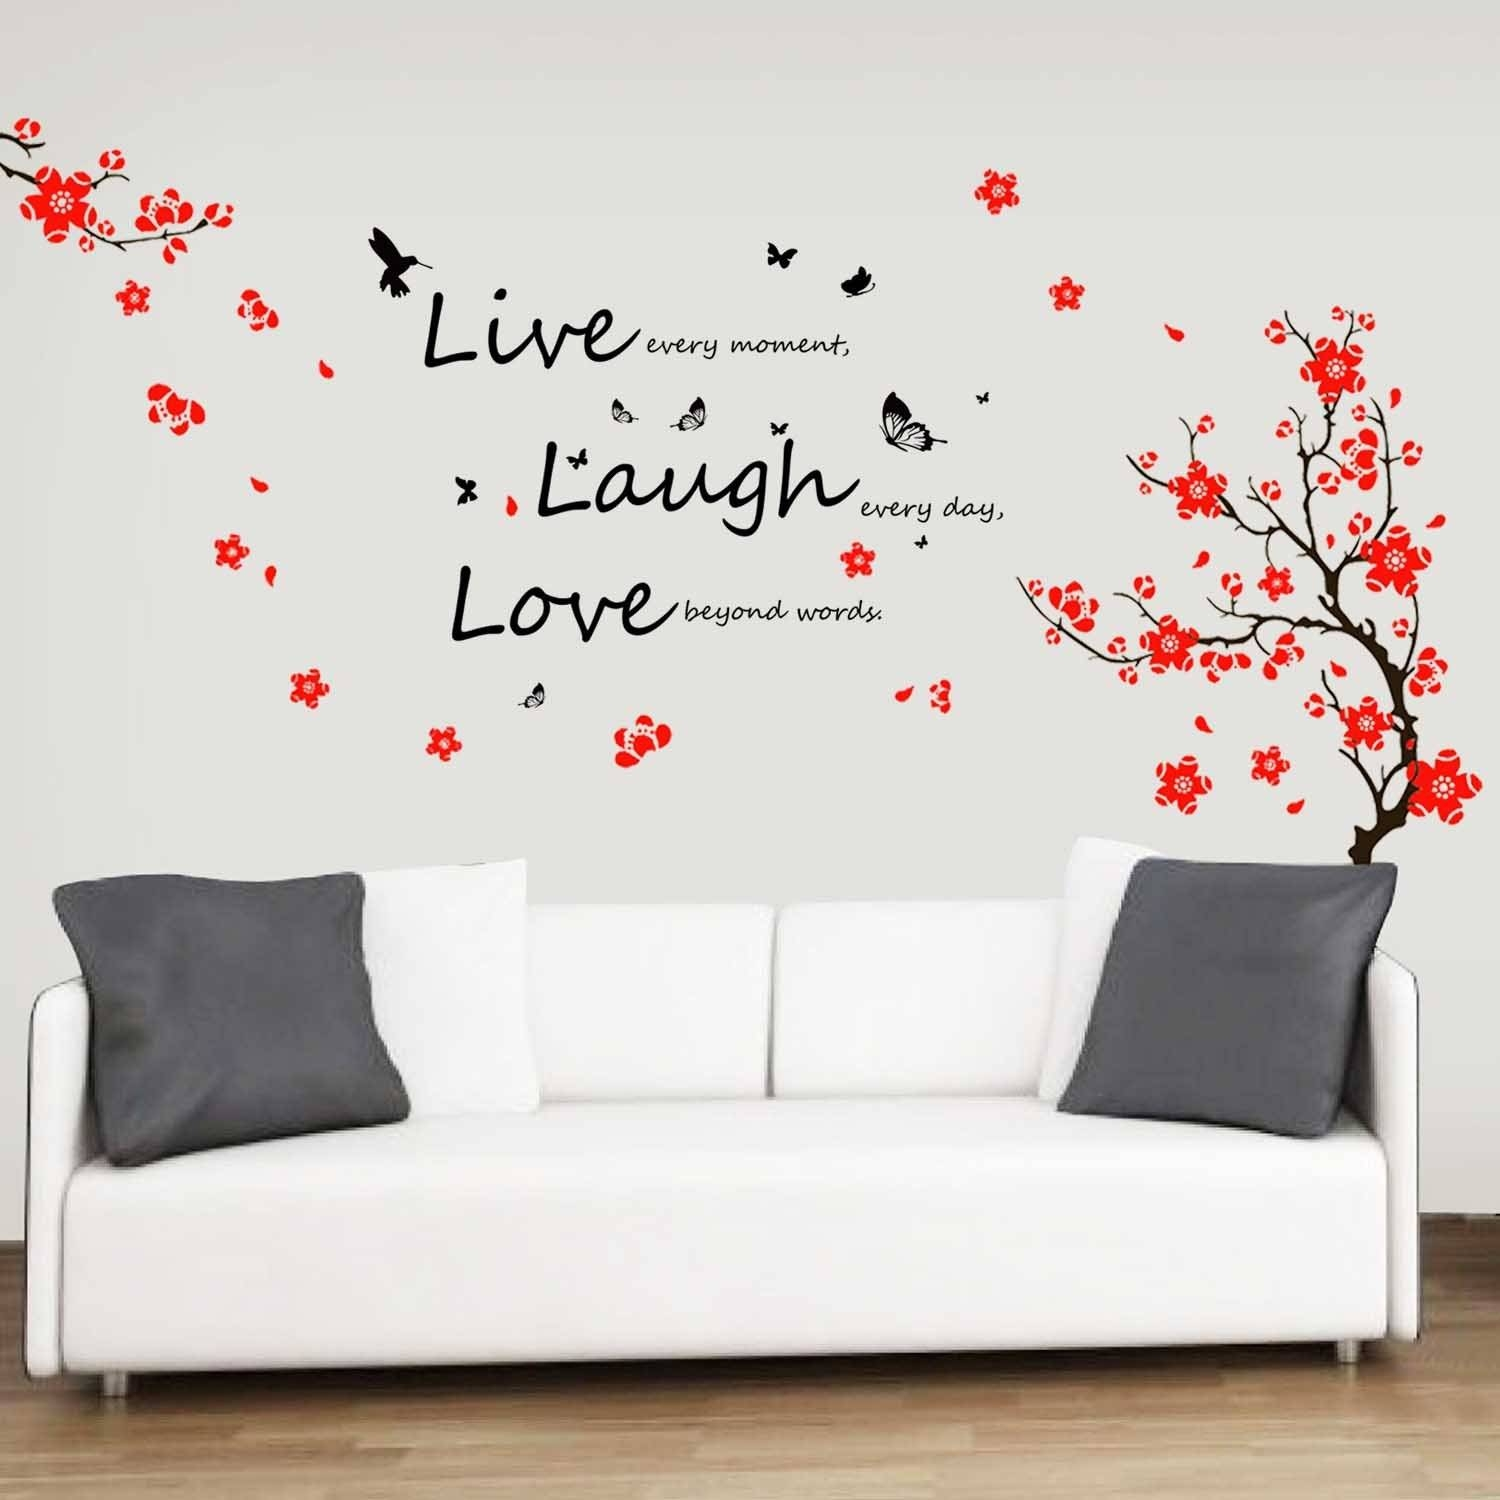 Articles With Cute Wall Art Sayings Tag: Cute Wall Art Images (View 8 of 20)